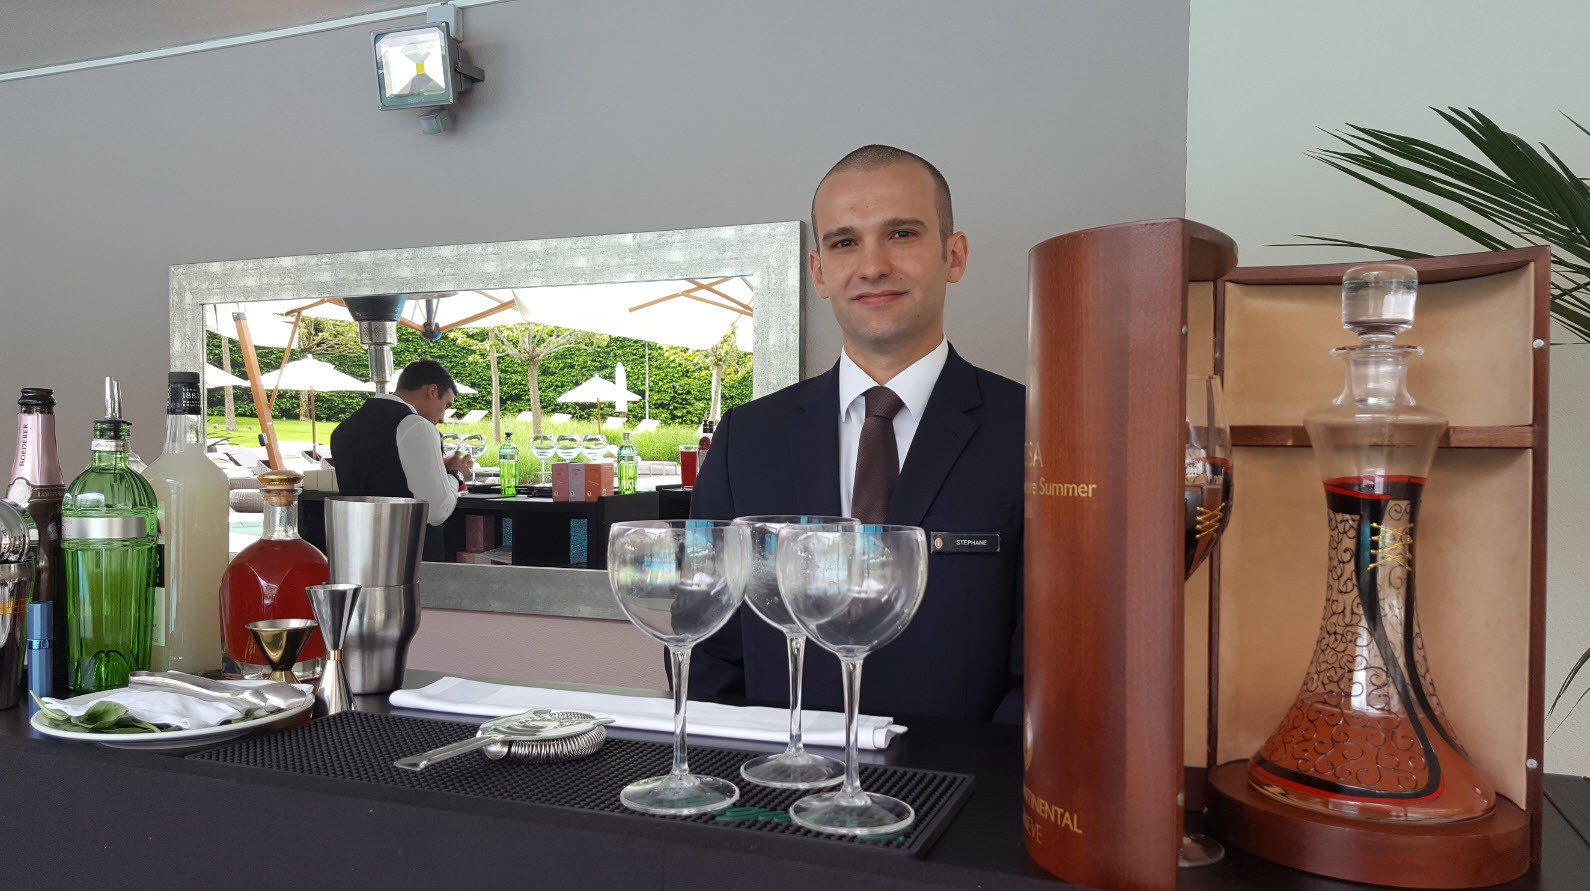 Barman InterContinental Geneve